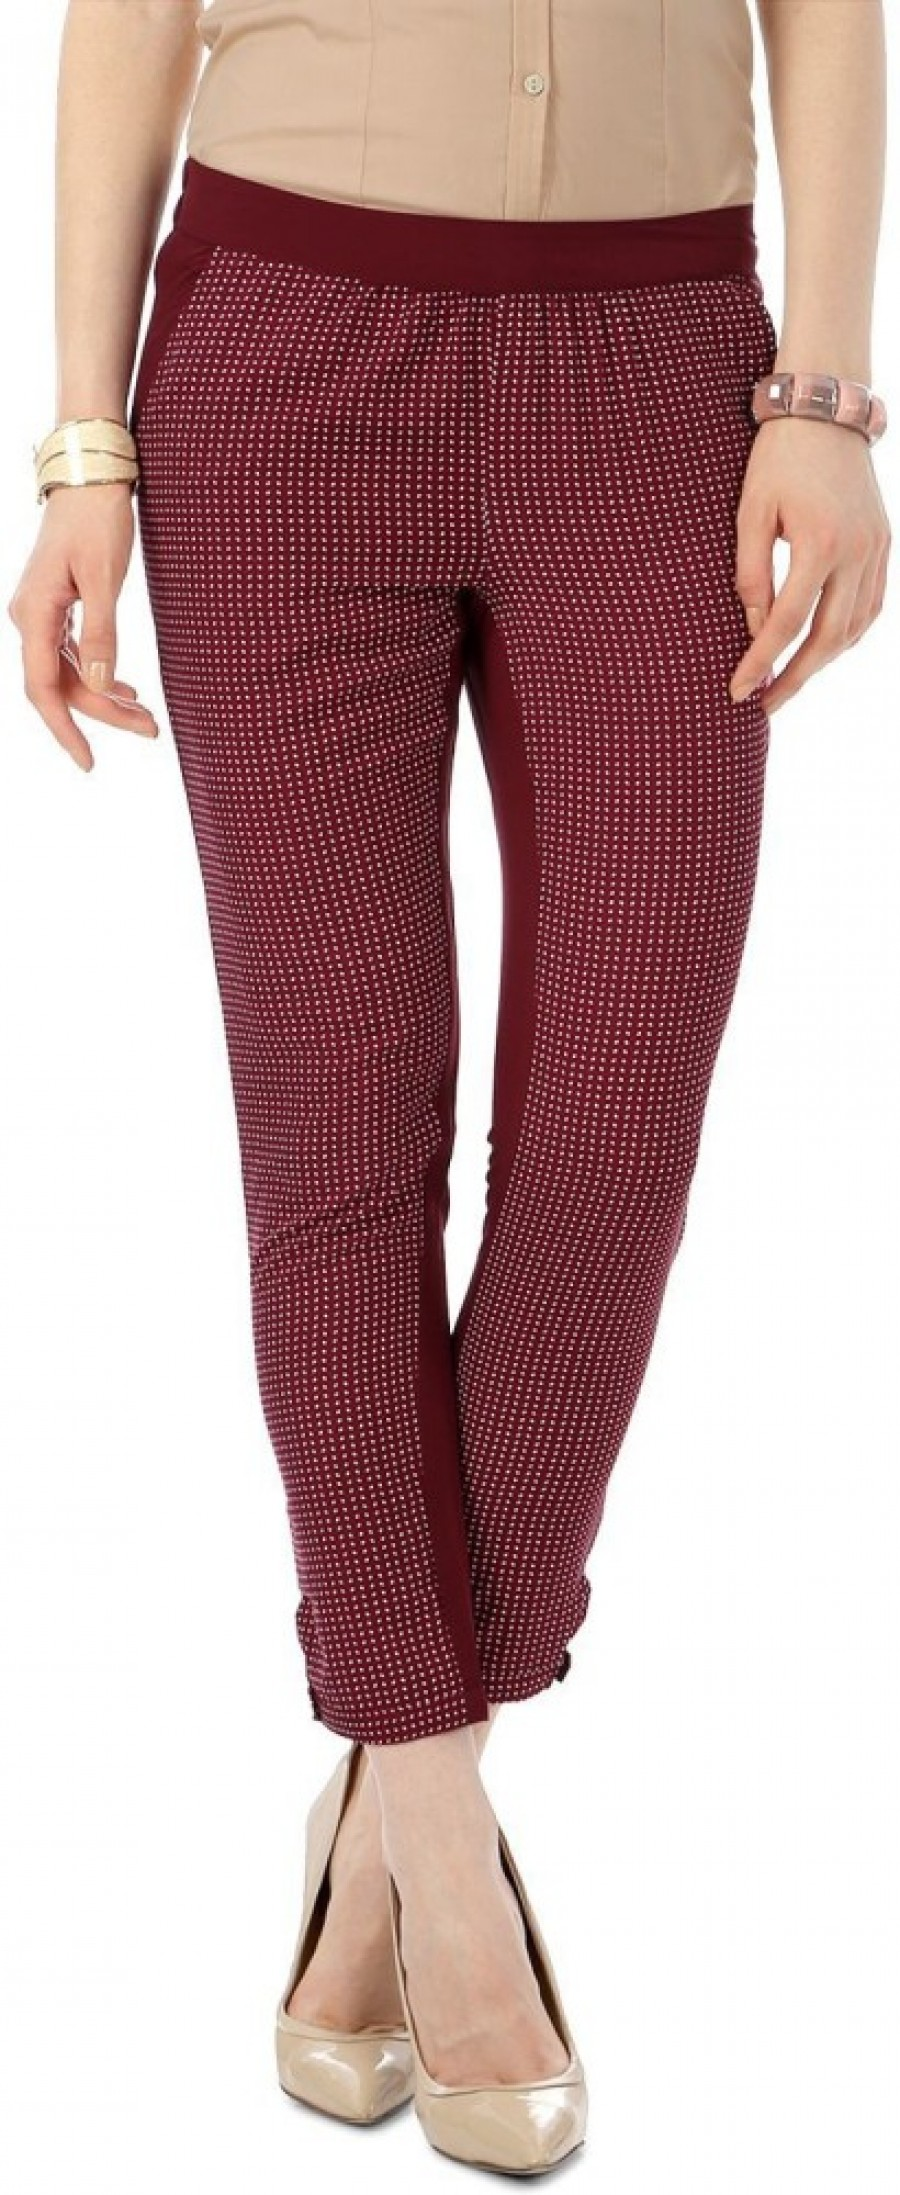 Buy Annabelle by Pantaloons Skinny Fit Women Maroon Trousers Online